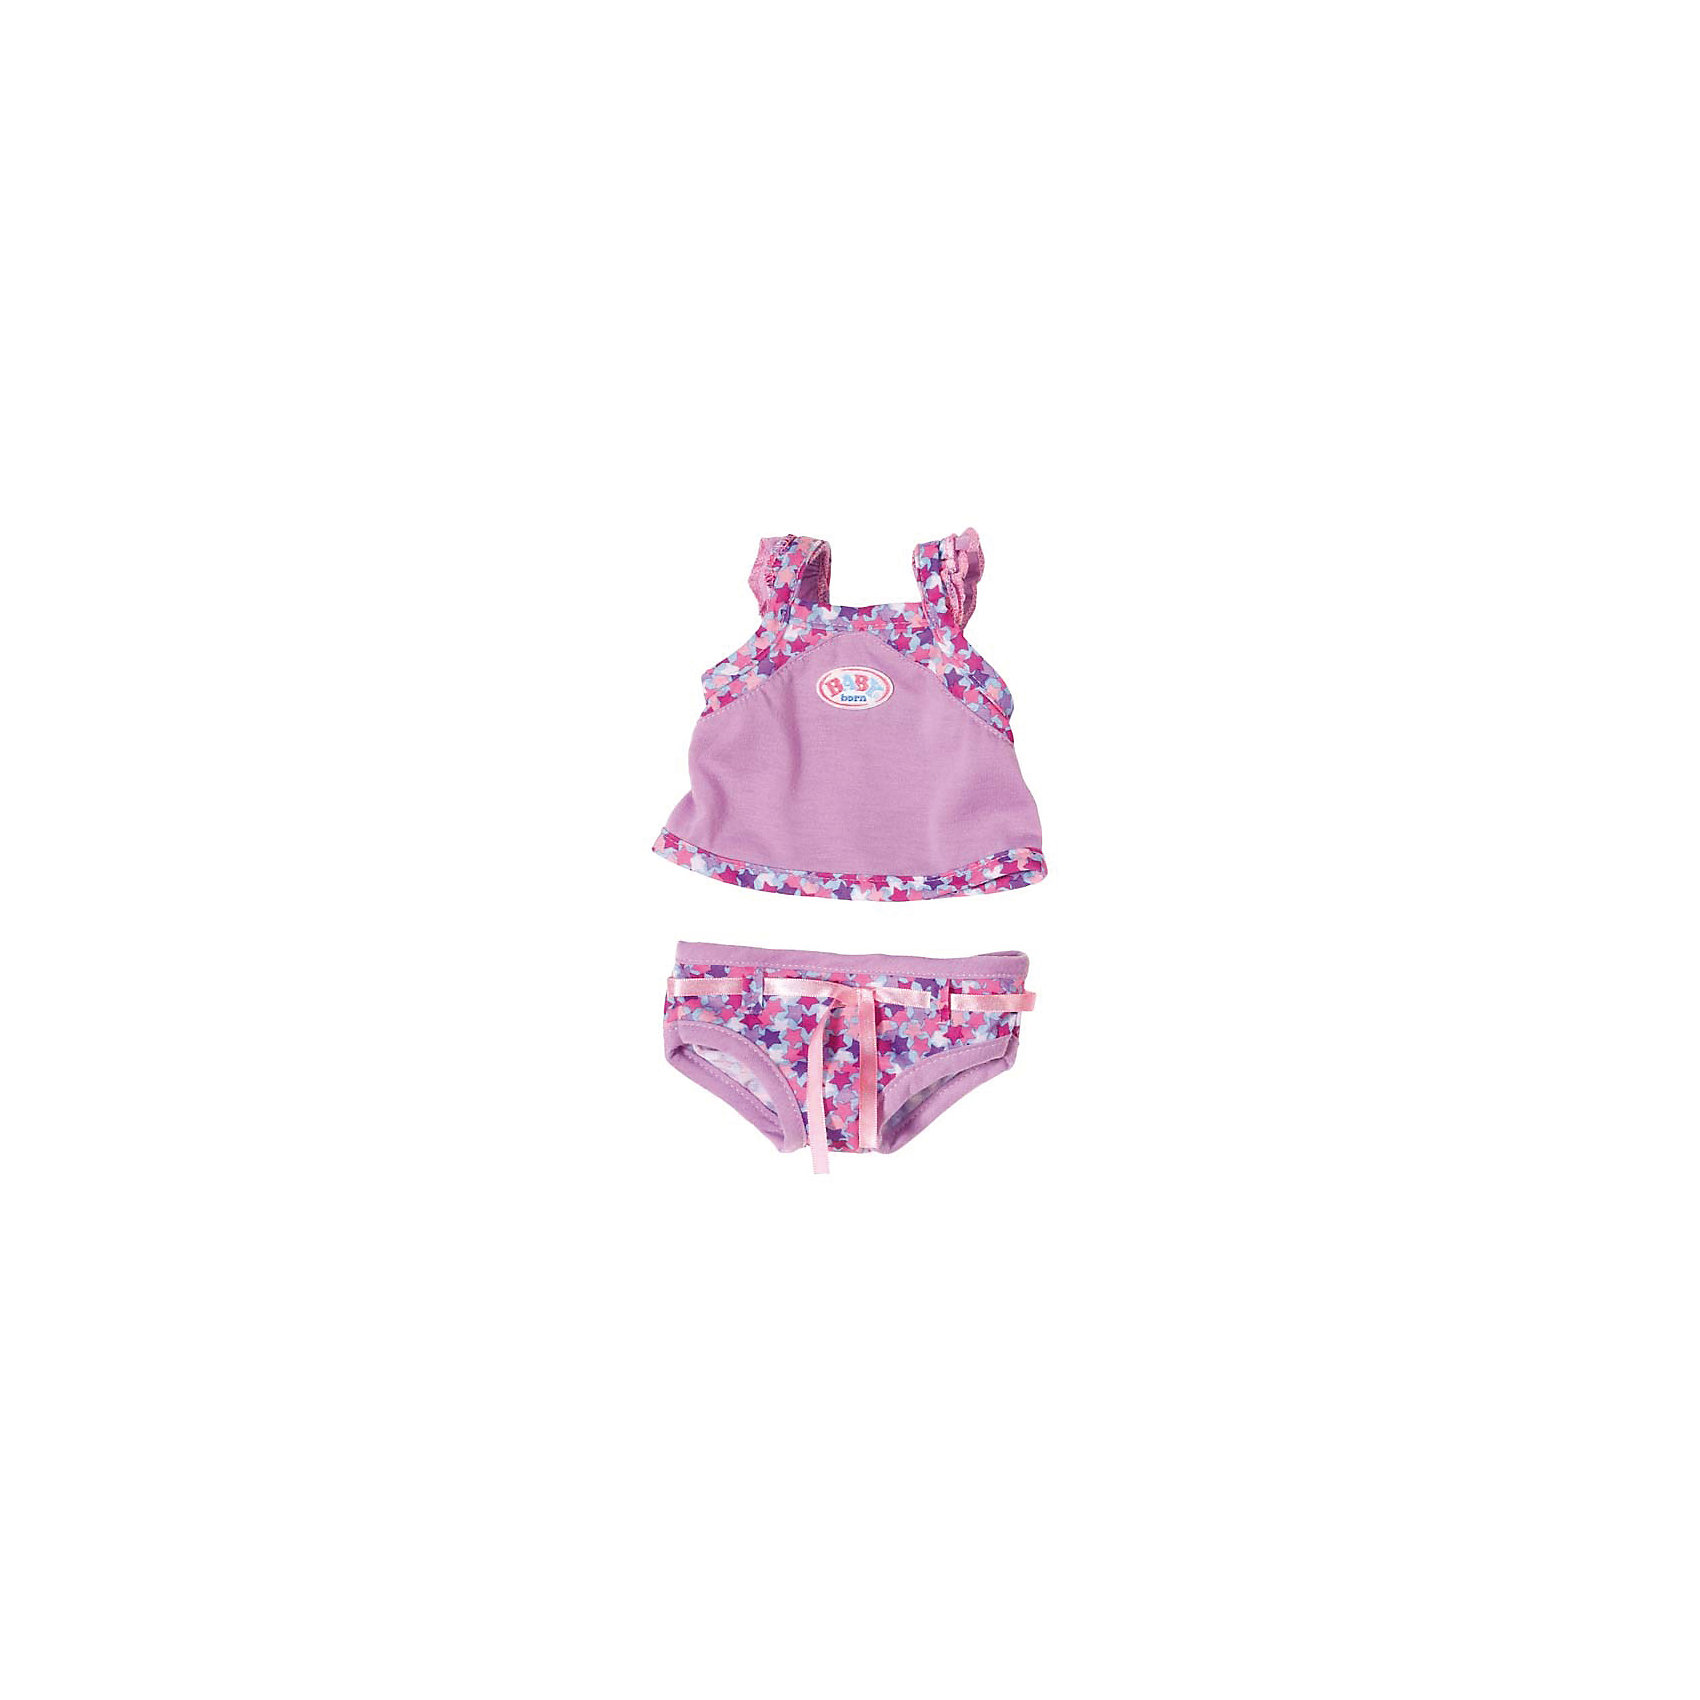 Zapf Creation Нижнее белье, фиолетовый, BABY born flower kids baby girl clothing dress princess sleeveless ruffles tutu ball petal tulle party formal cute dresses girls